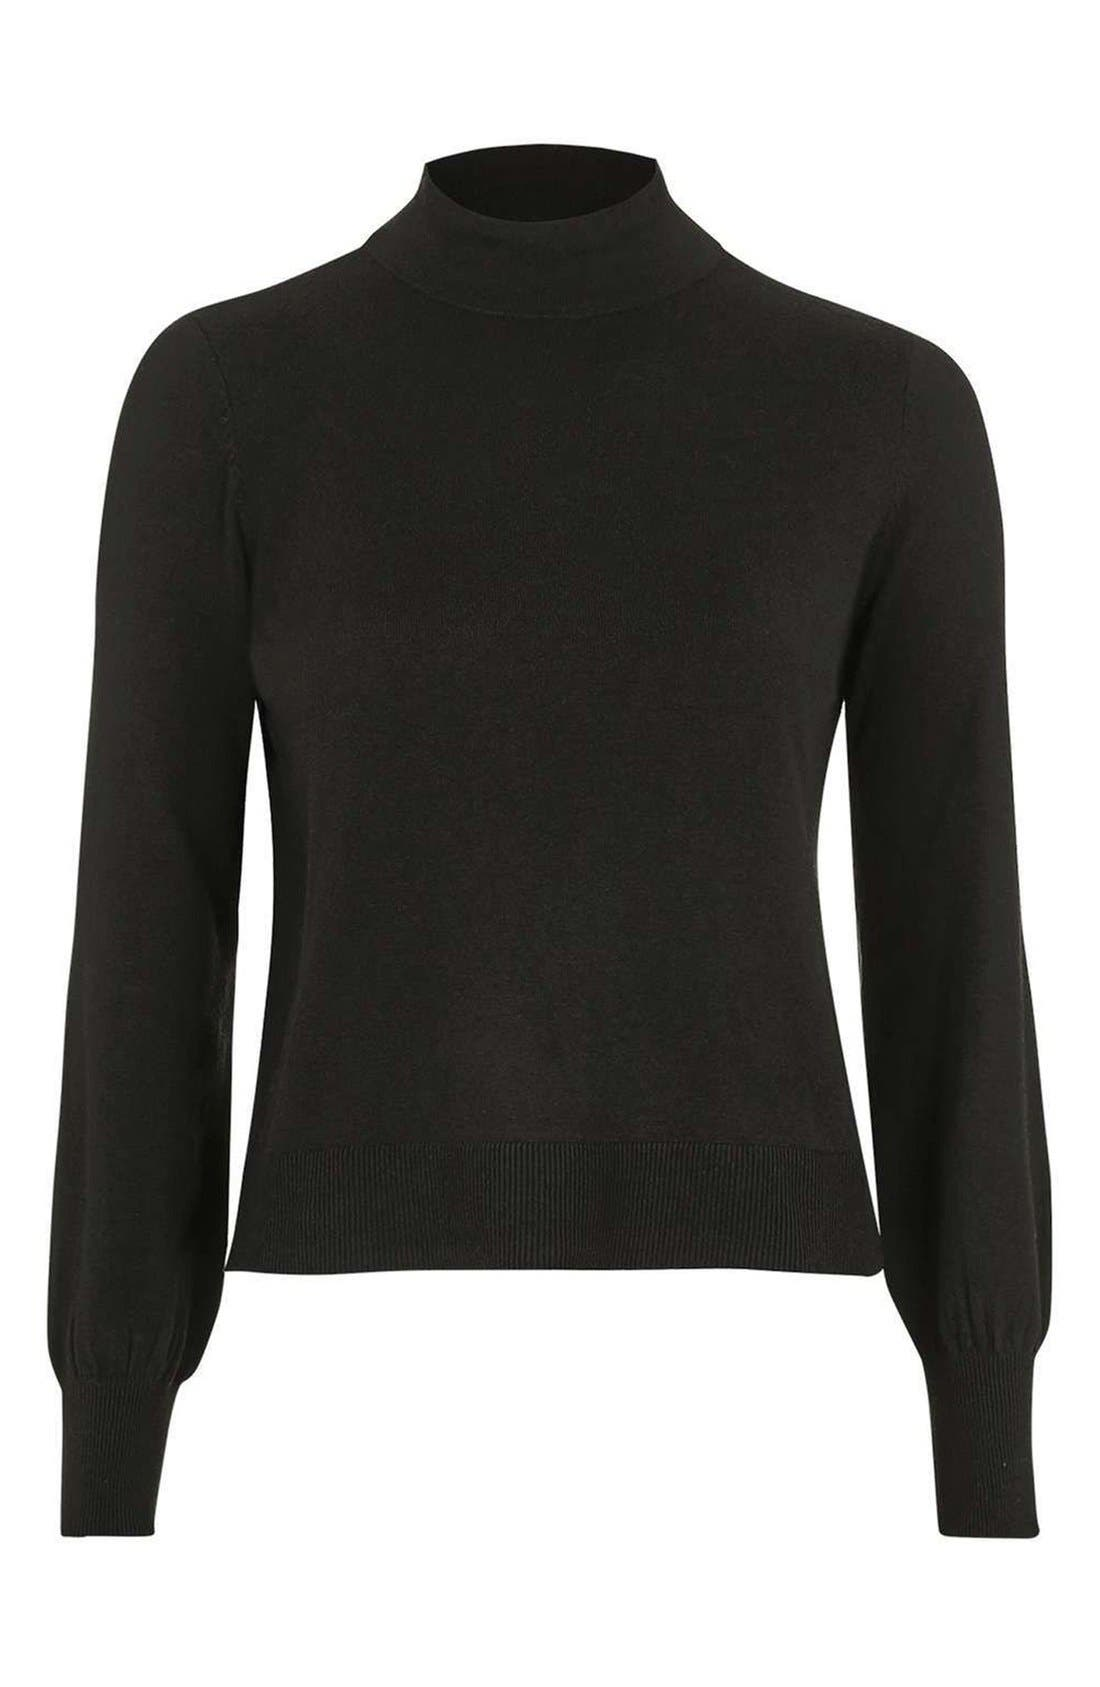 TOPSHOP,                             Blouson Sleeve Mock Neck Sweater,                             Alternate thumbnail 4, color,                             001